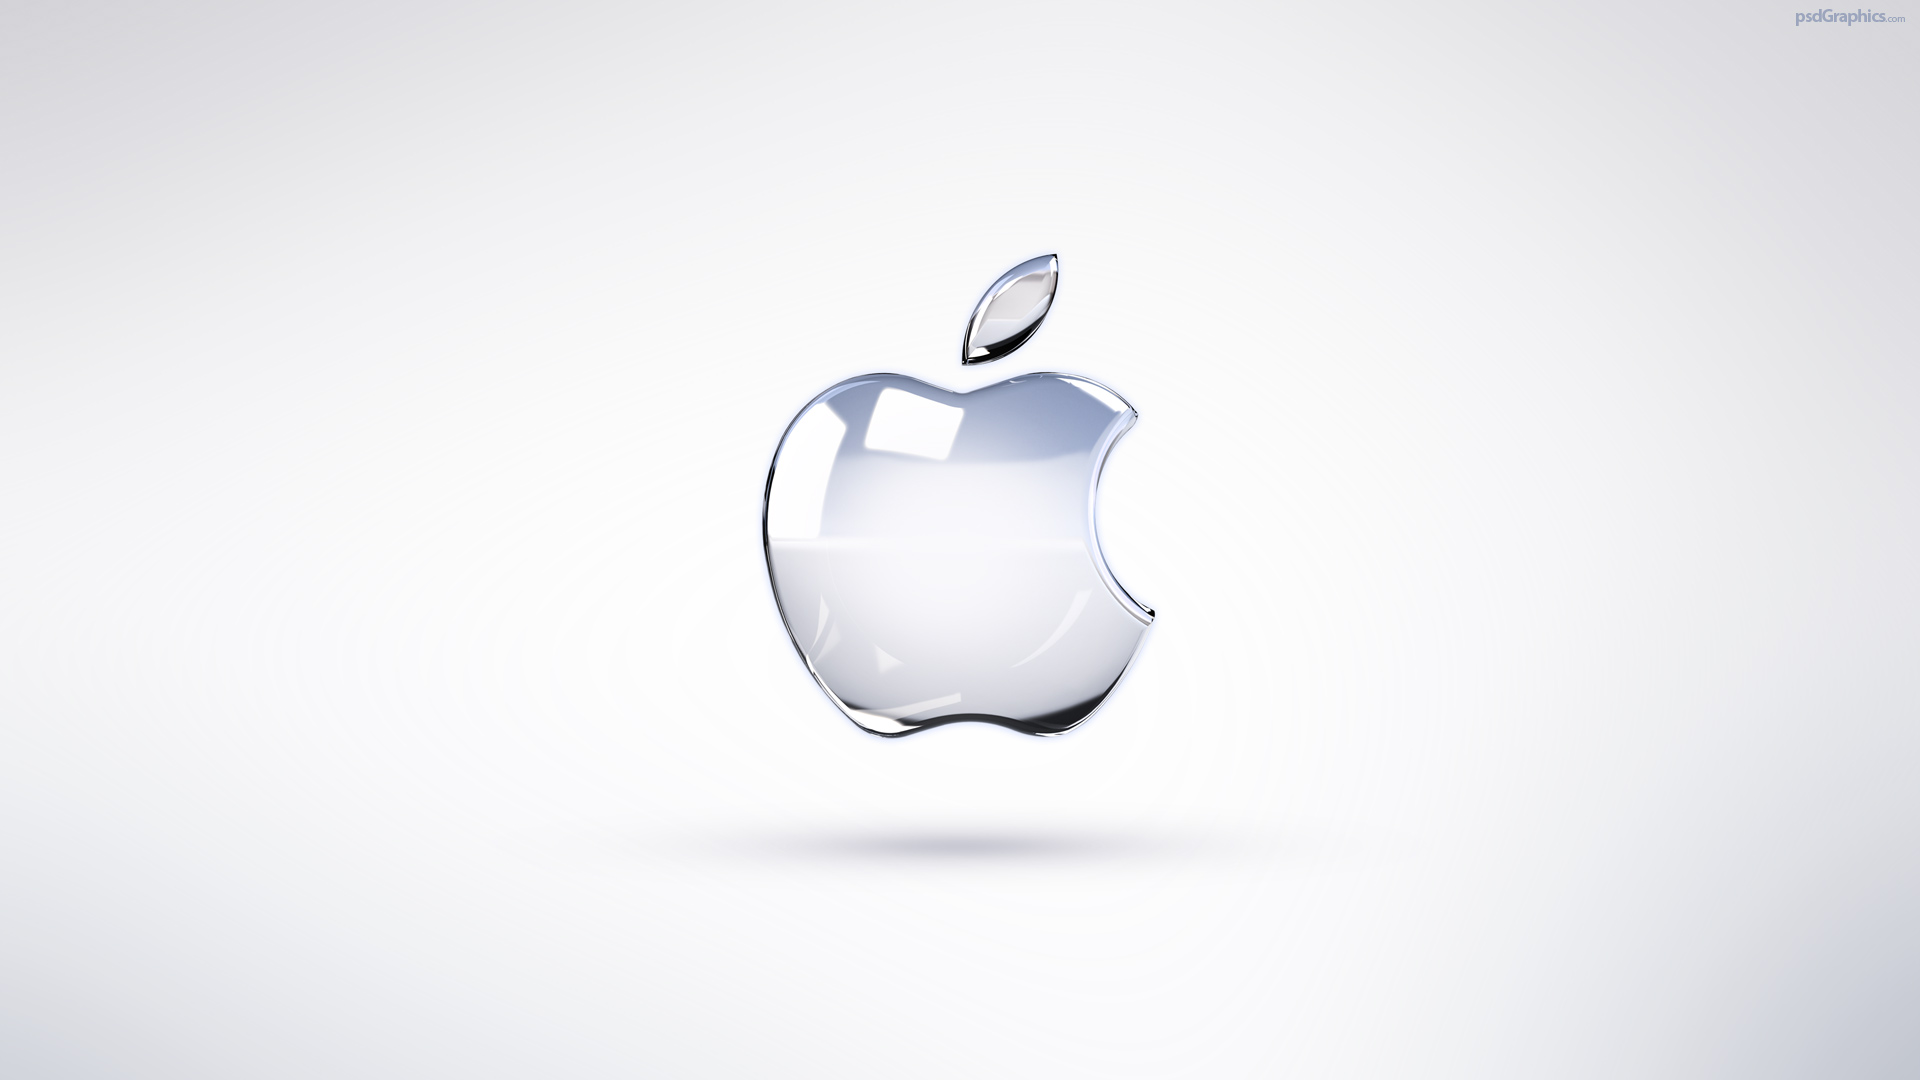 bright apple logo wallpaper | psdgraphics